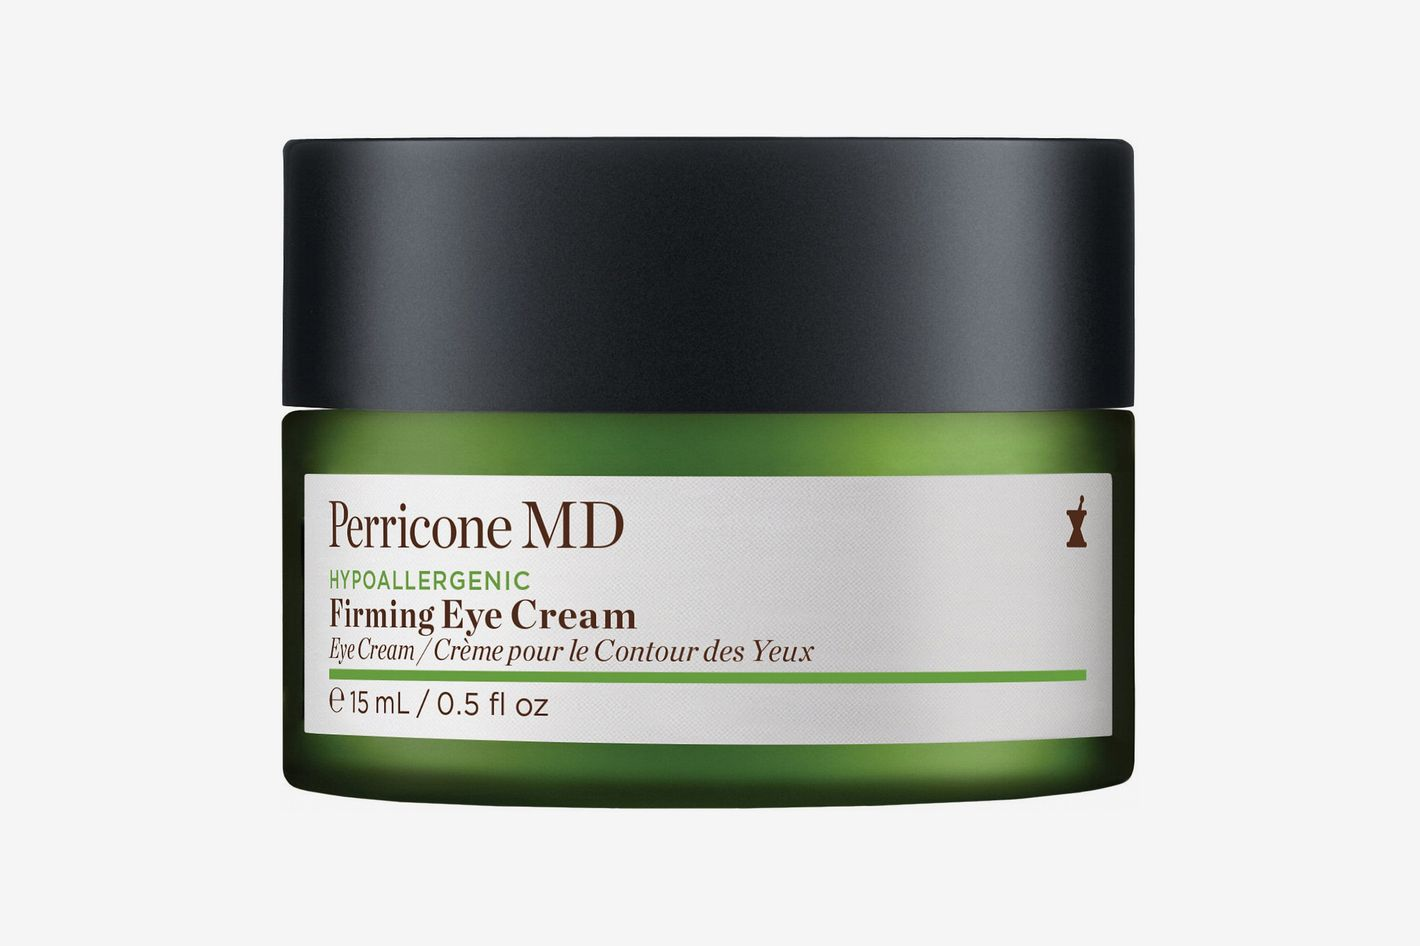 7 Best Eye Creams for Dark Circles and Wrinkles 2019